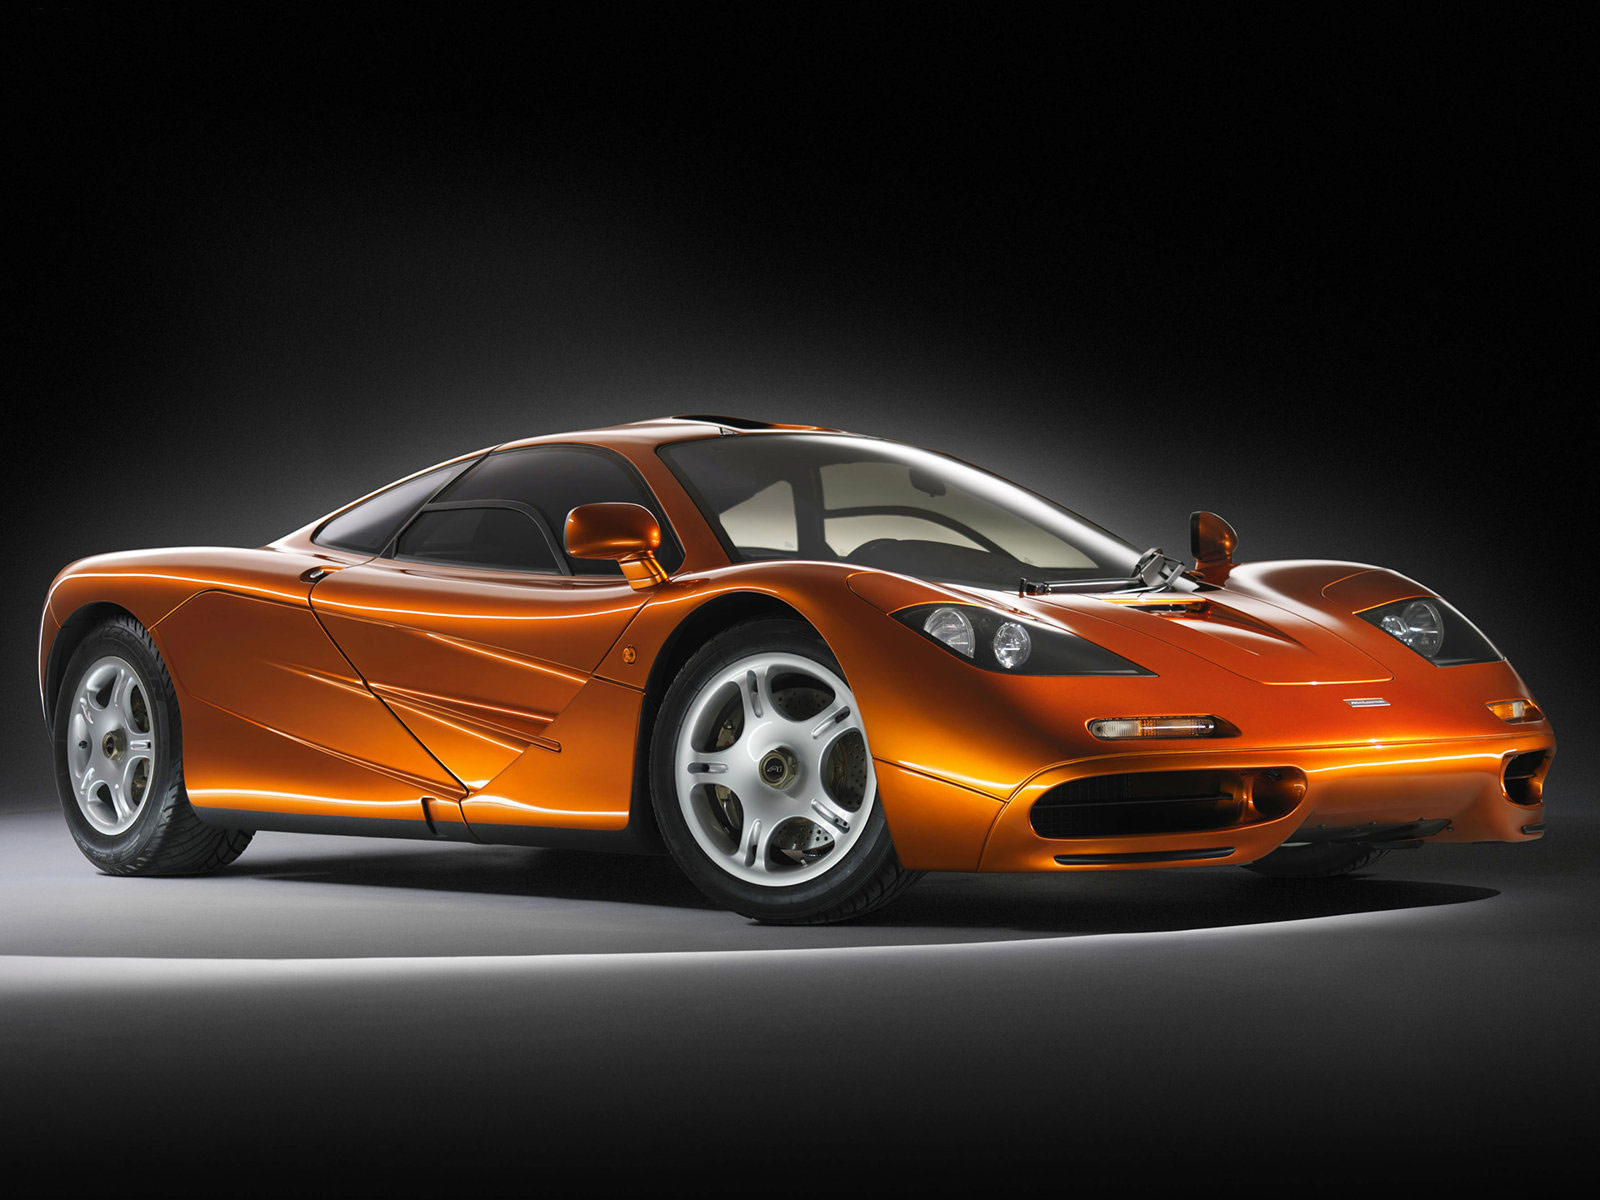 Top 10 Most Expensive Cars In The World Hd Wallpapers